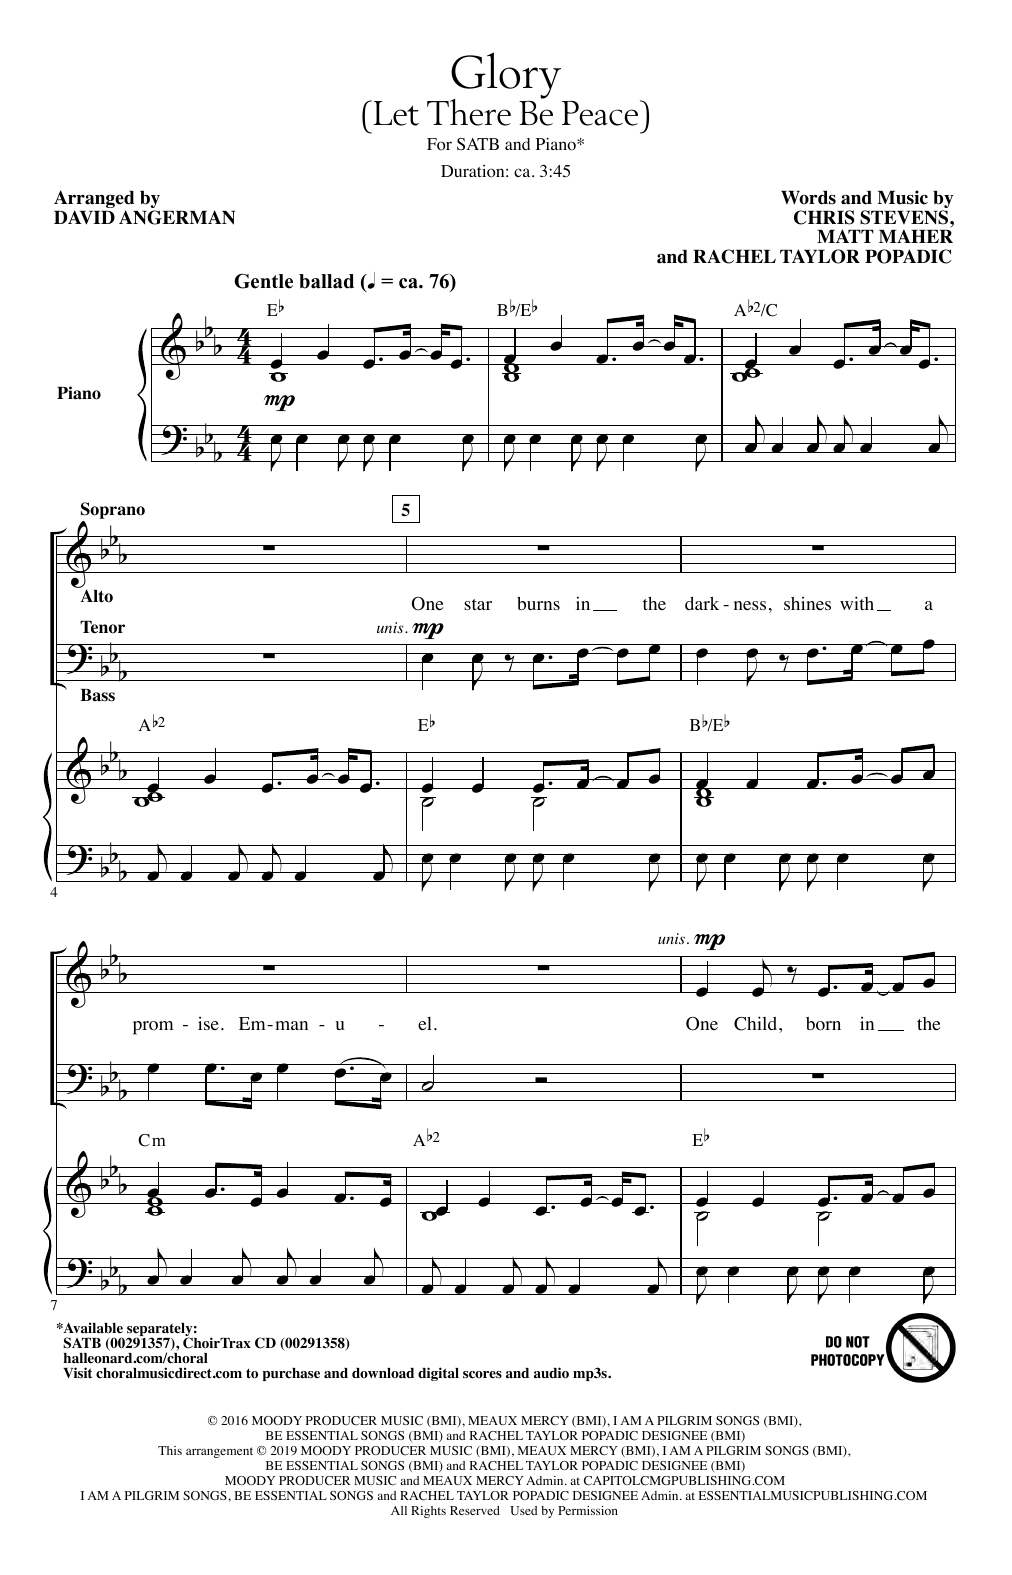 Glory (Let There Be Peace) (arr. David Angerman) (SATB Choir)